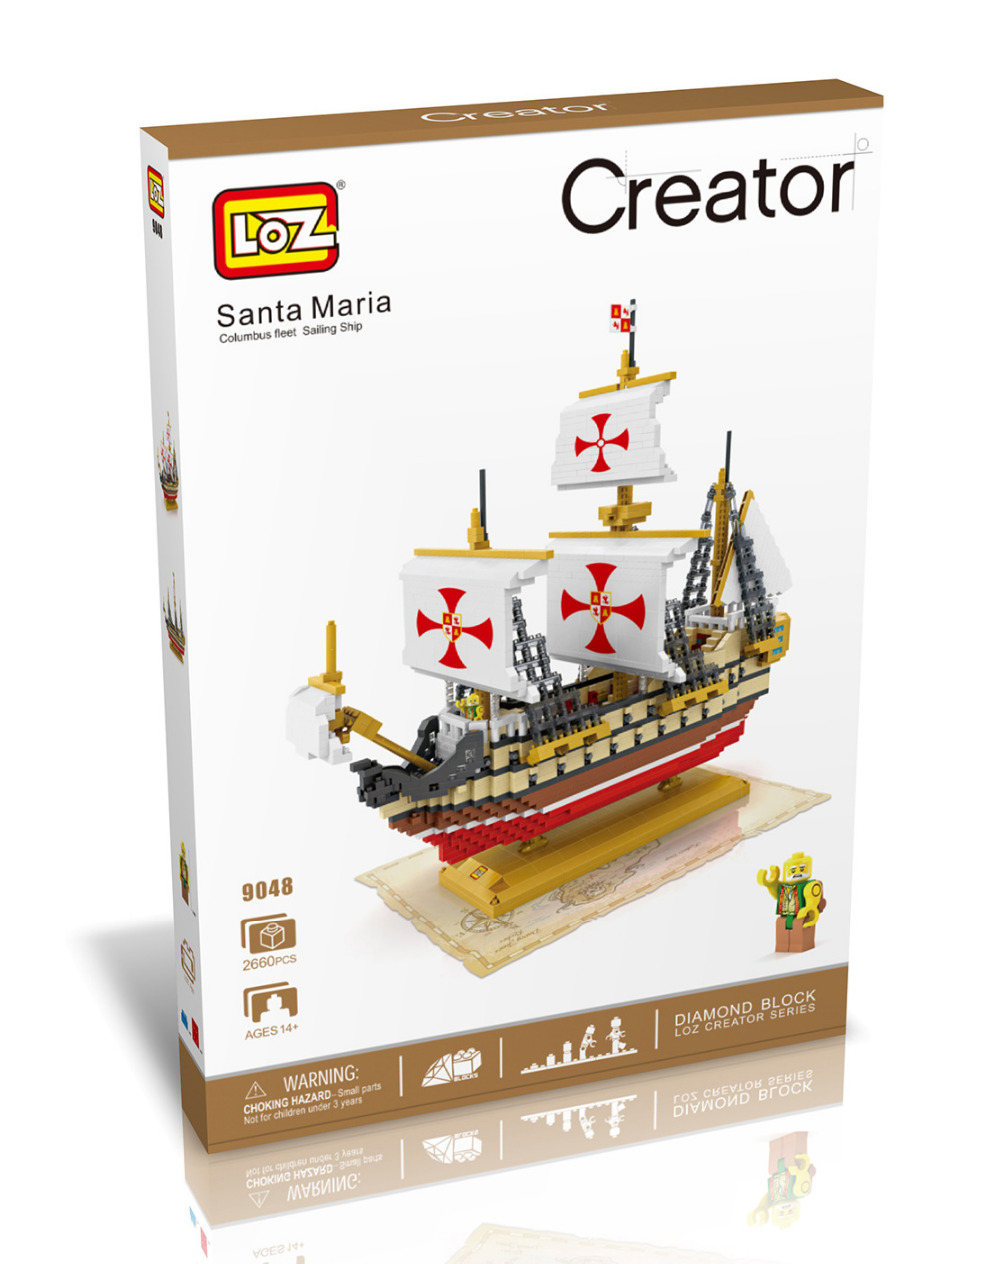 LOZ Mini Blocks Santa Maria Ship Model Boat Blocks Creator Building Assembly Toy Kids Micro Brick Toys for Children 9048 loz mini diamond block world famous architecture financial center swfc shangha china city nanoblock model brick educational toys